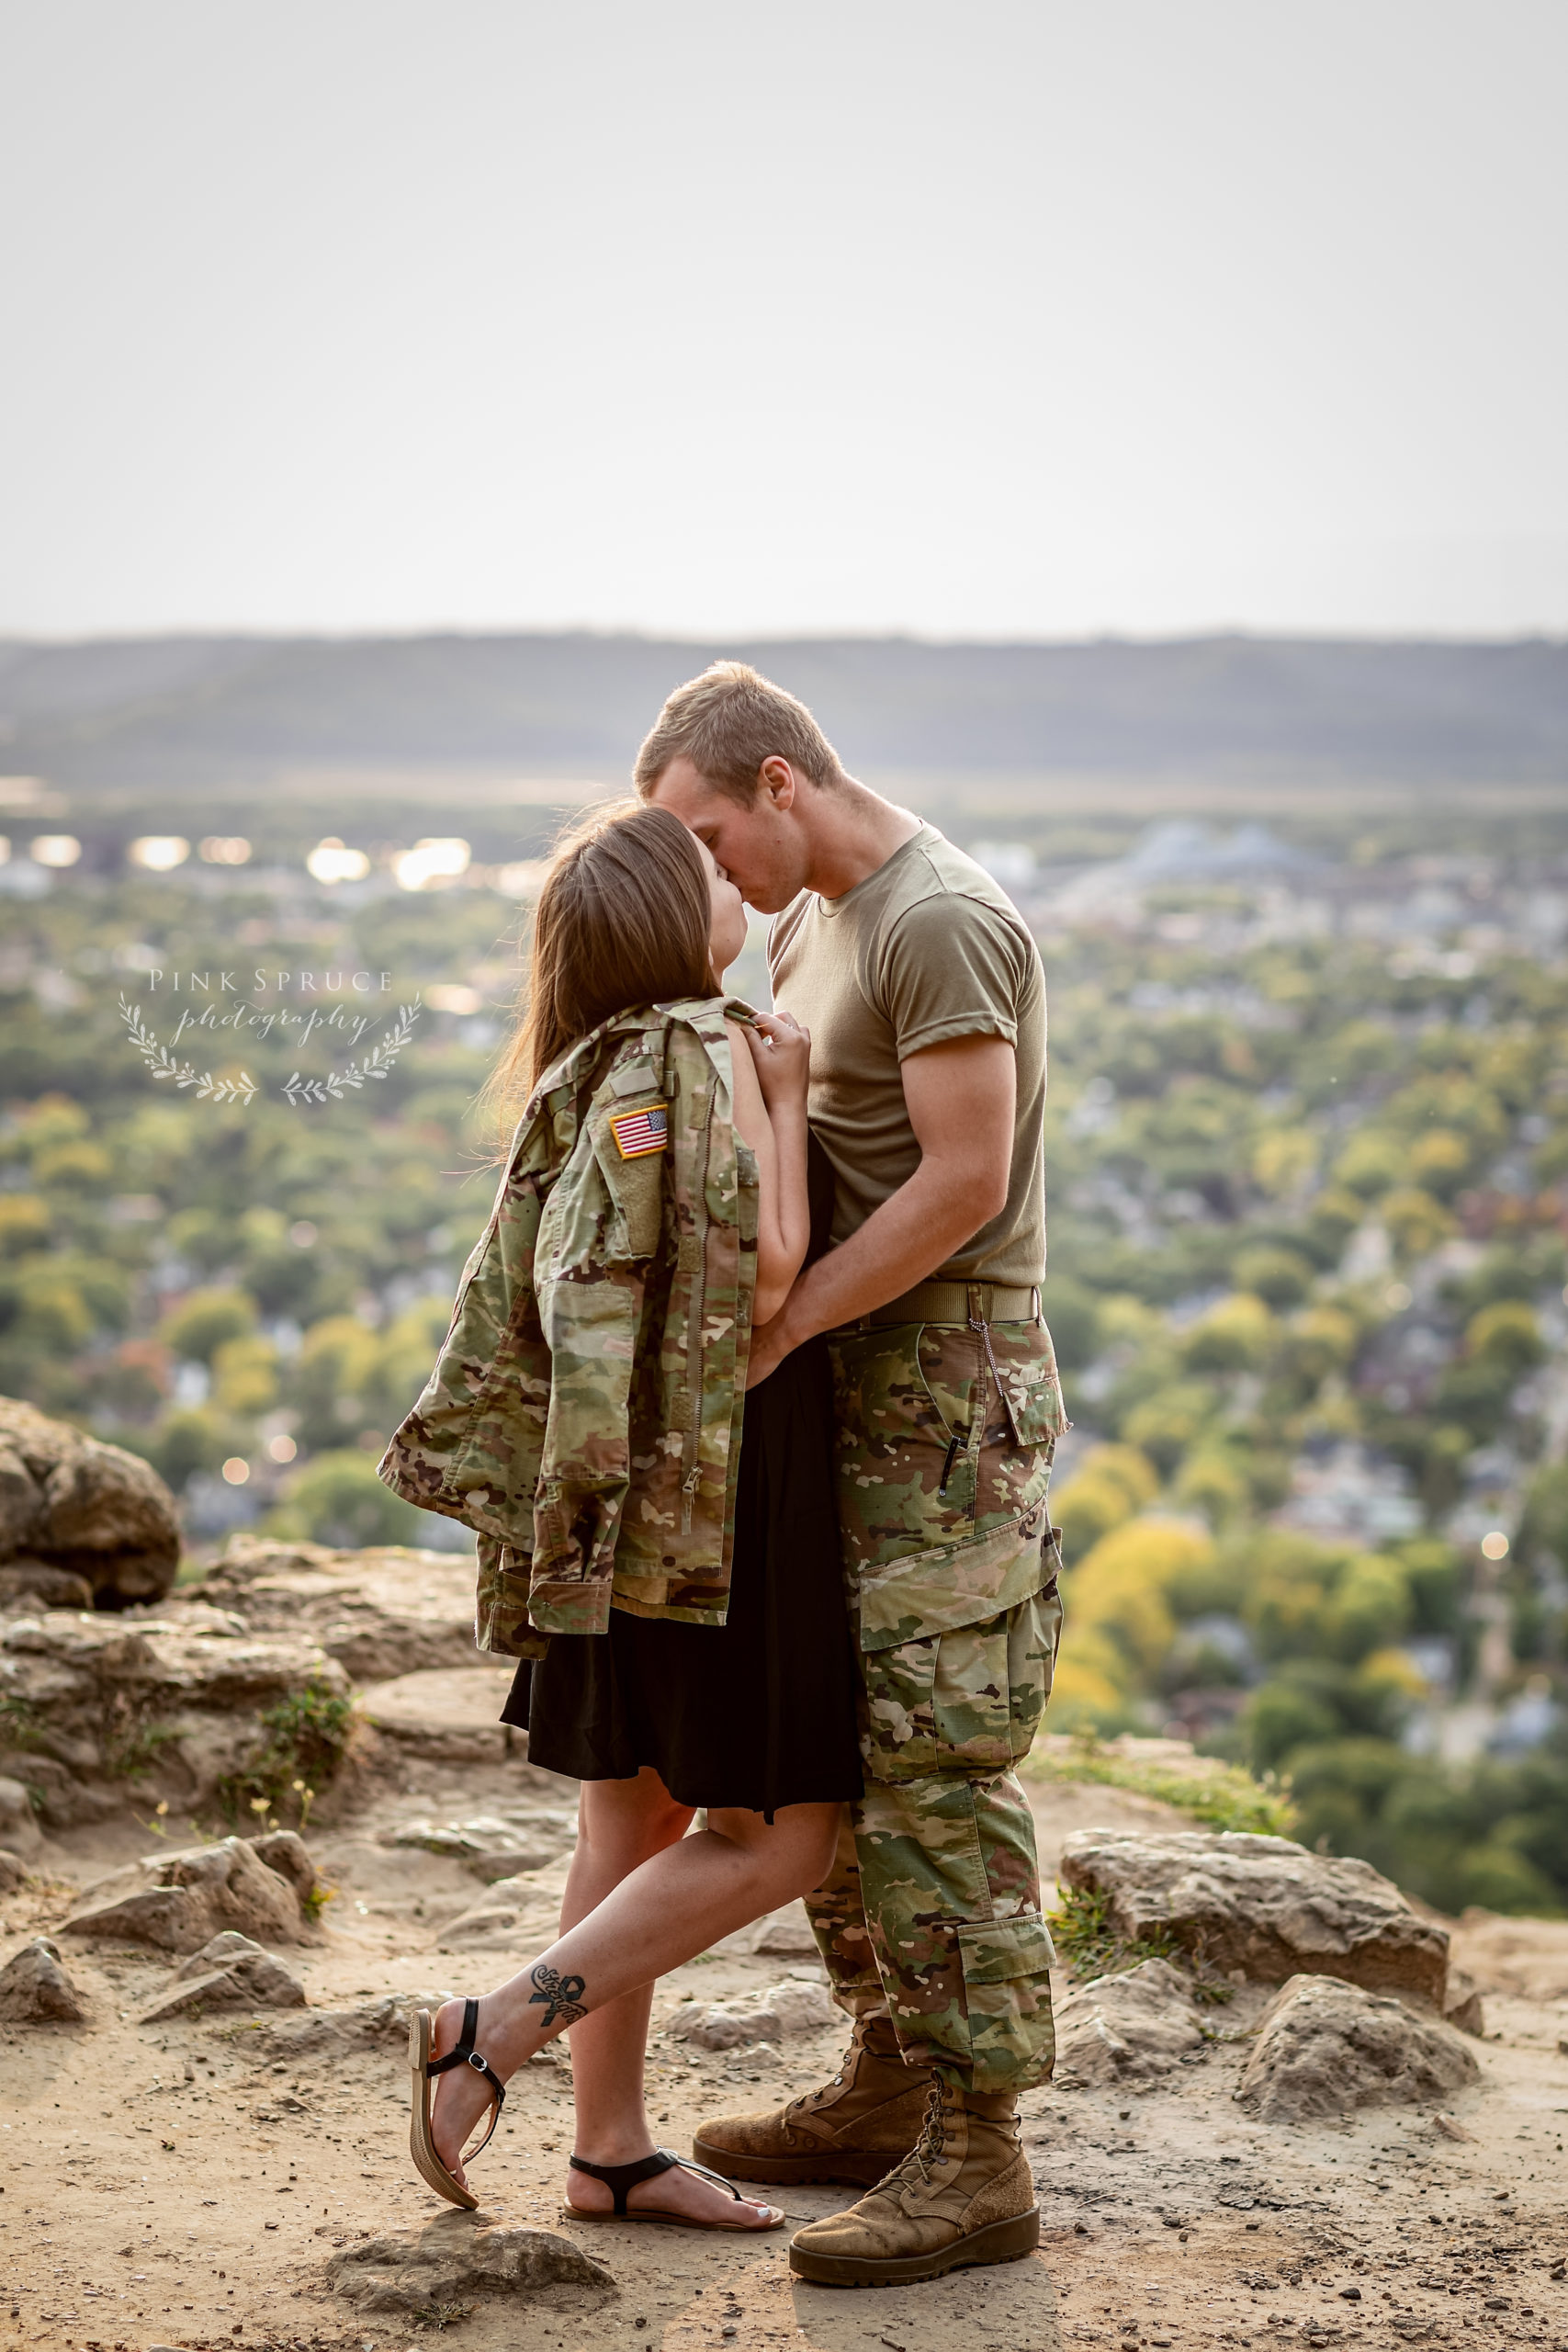 Military Engagement Session at Grandad Bluff · Courtney + Colin | La Crosse Wi Engagement Session